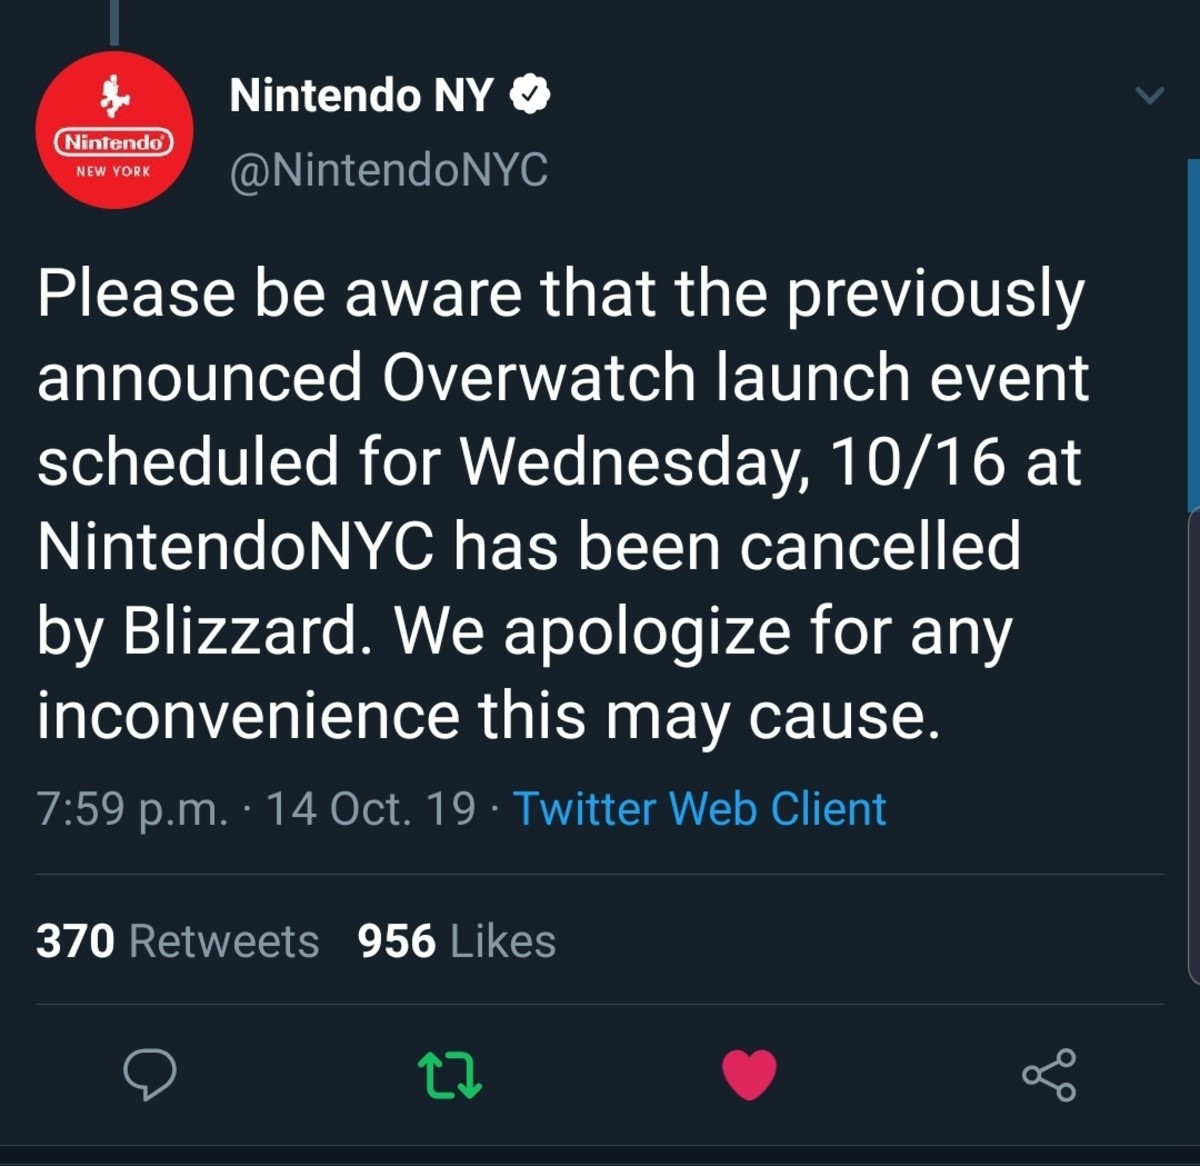 Blizzard Cancels Event. .. Someone post the 'It's Afraid' image from Starship Troopers please, or the gif/webm. Comment edited at .